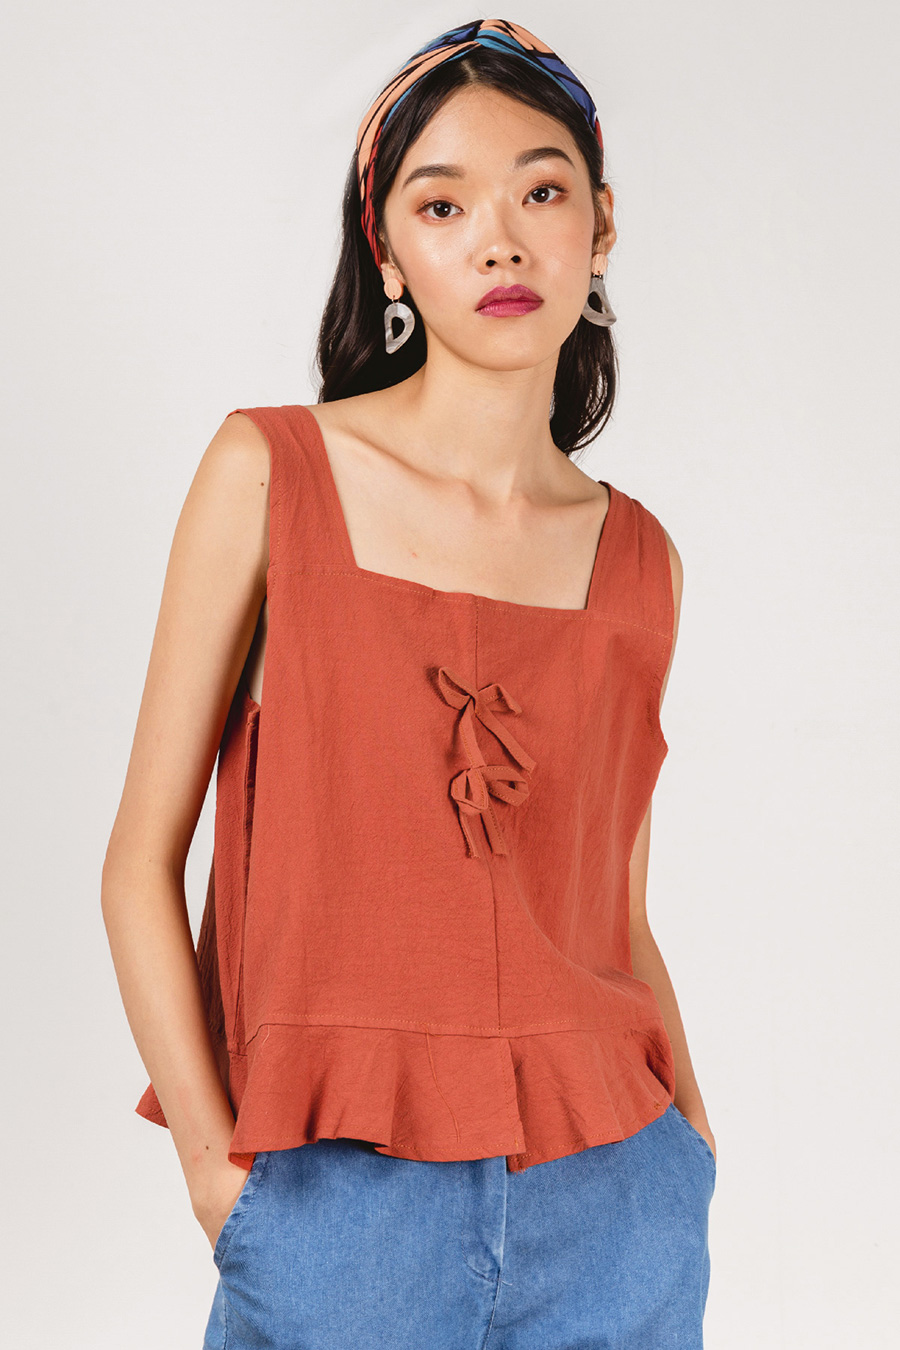 LECIA TOP - FADED ROSE